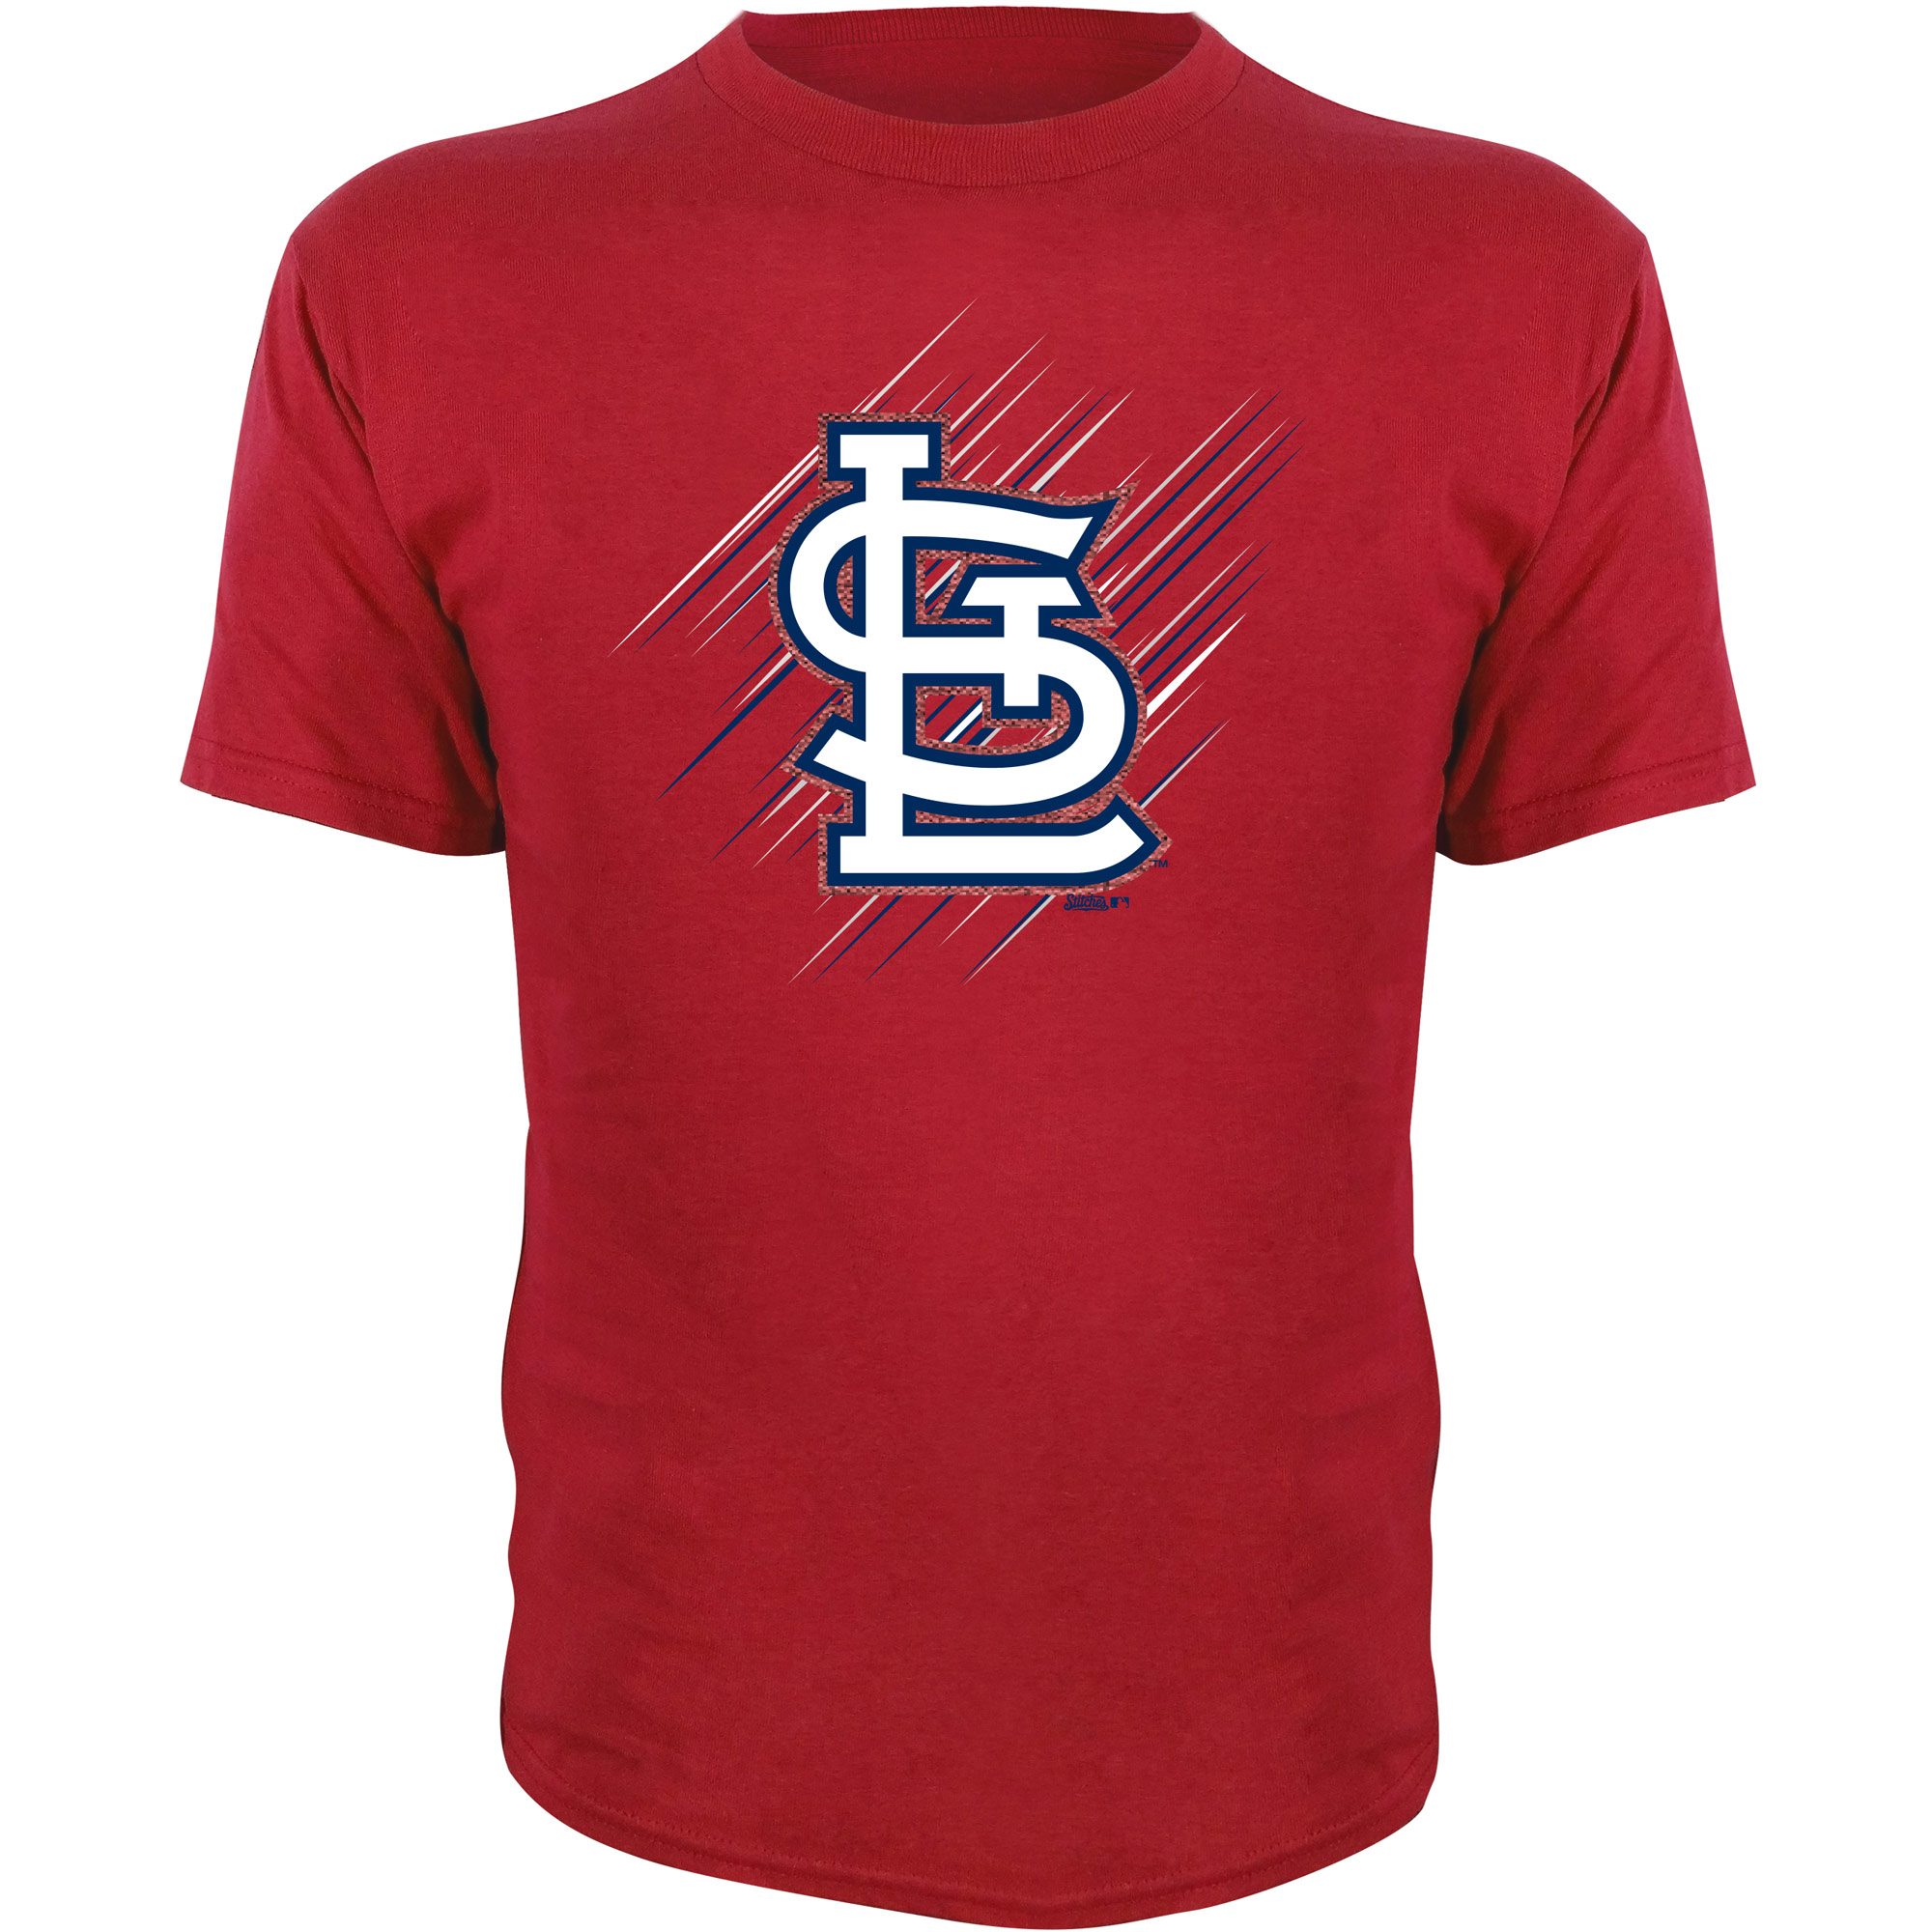 St. Louis Cardinals Stitches Youth Team Logo T-Shirt - Red